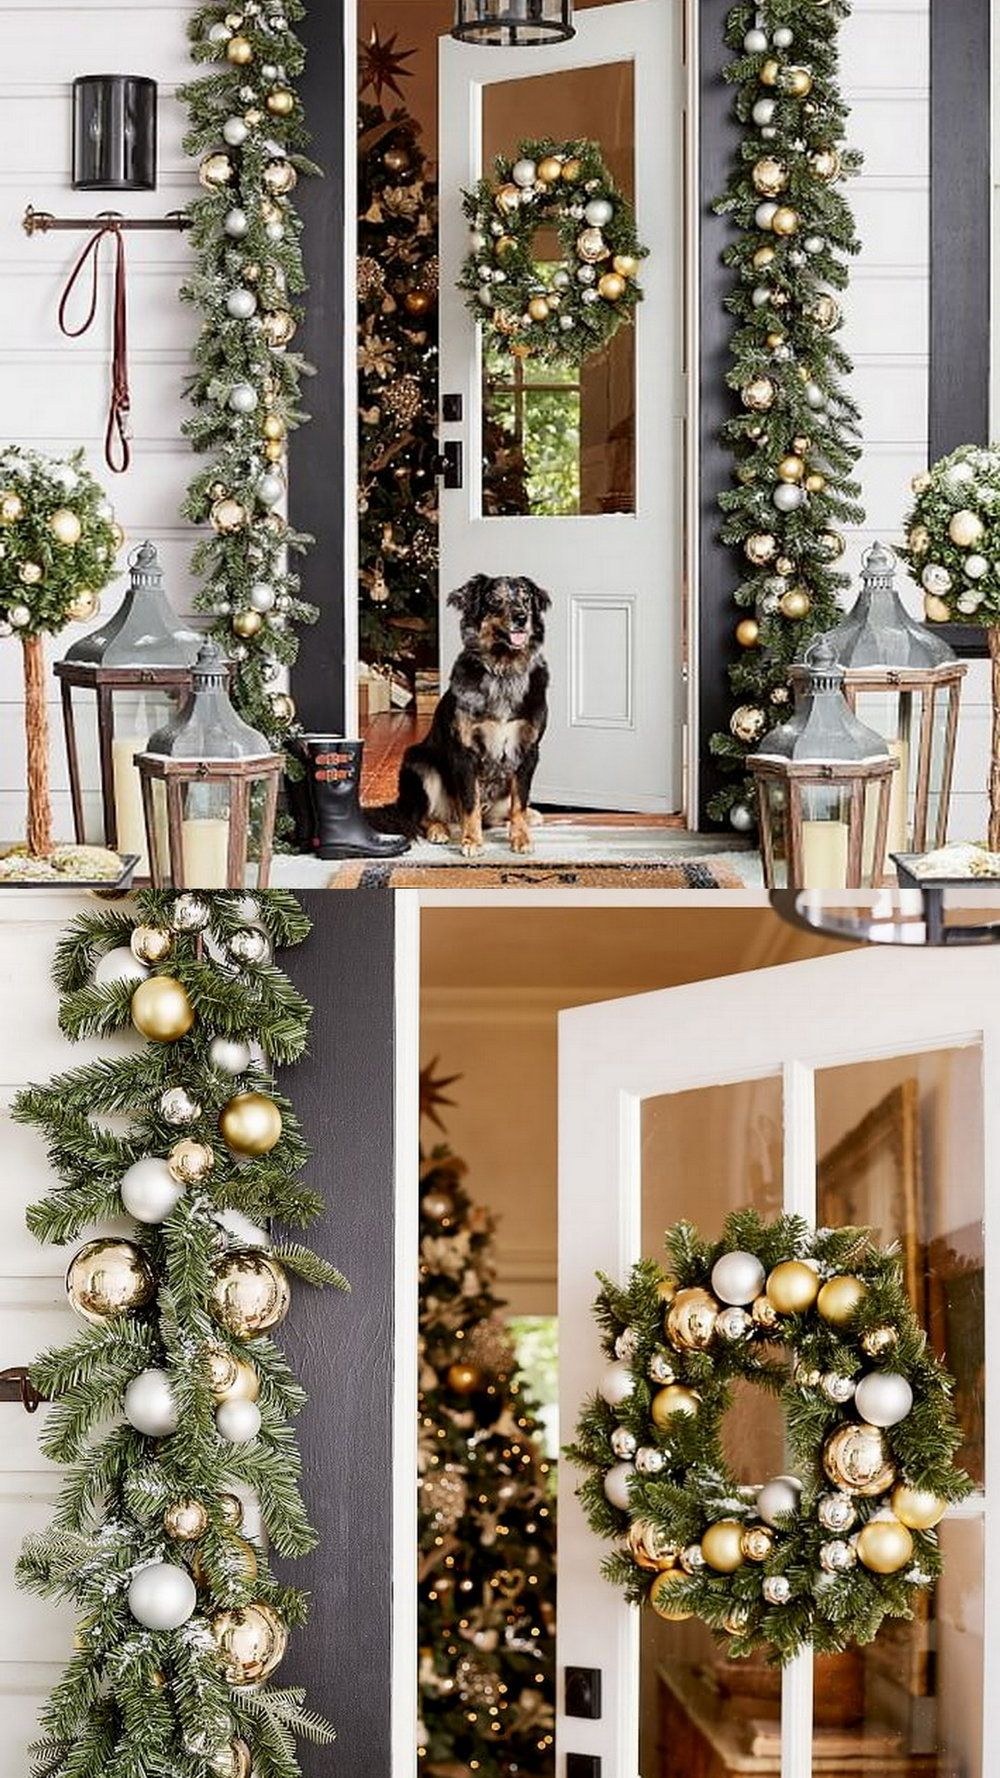 Indoor Outdoor Ornament Pine Gold Silver Decor Exterior Christmas Decorations Outdoor Christmas Decorations Christmas Deco